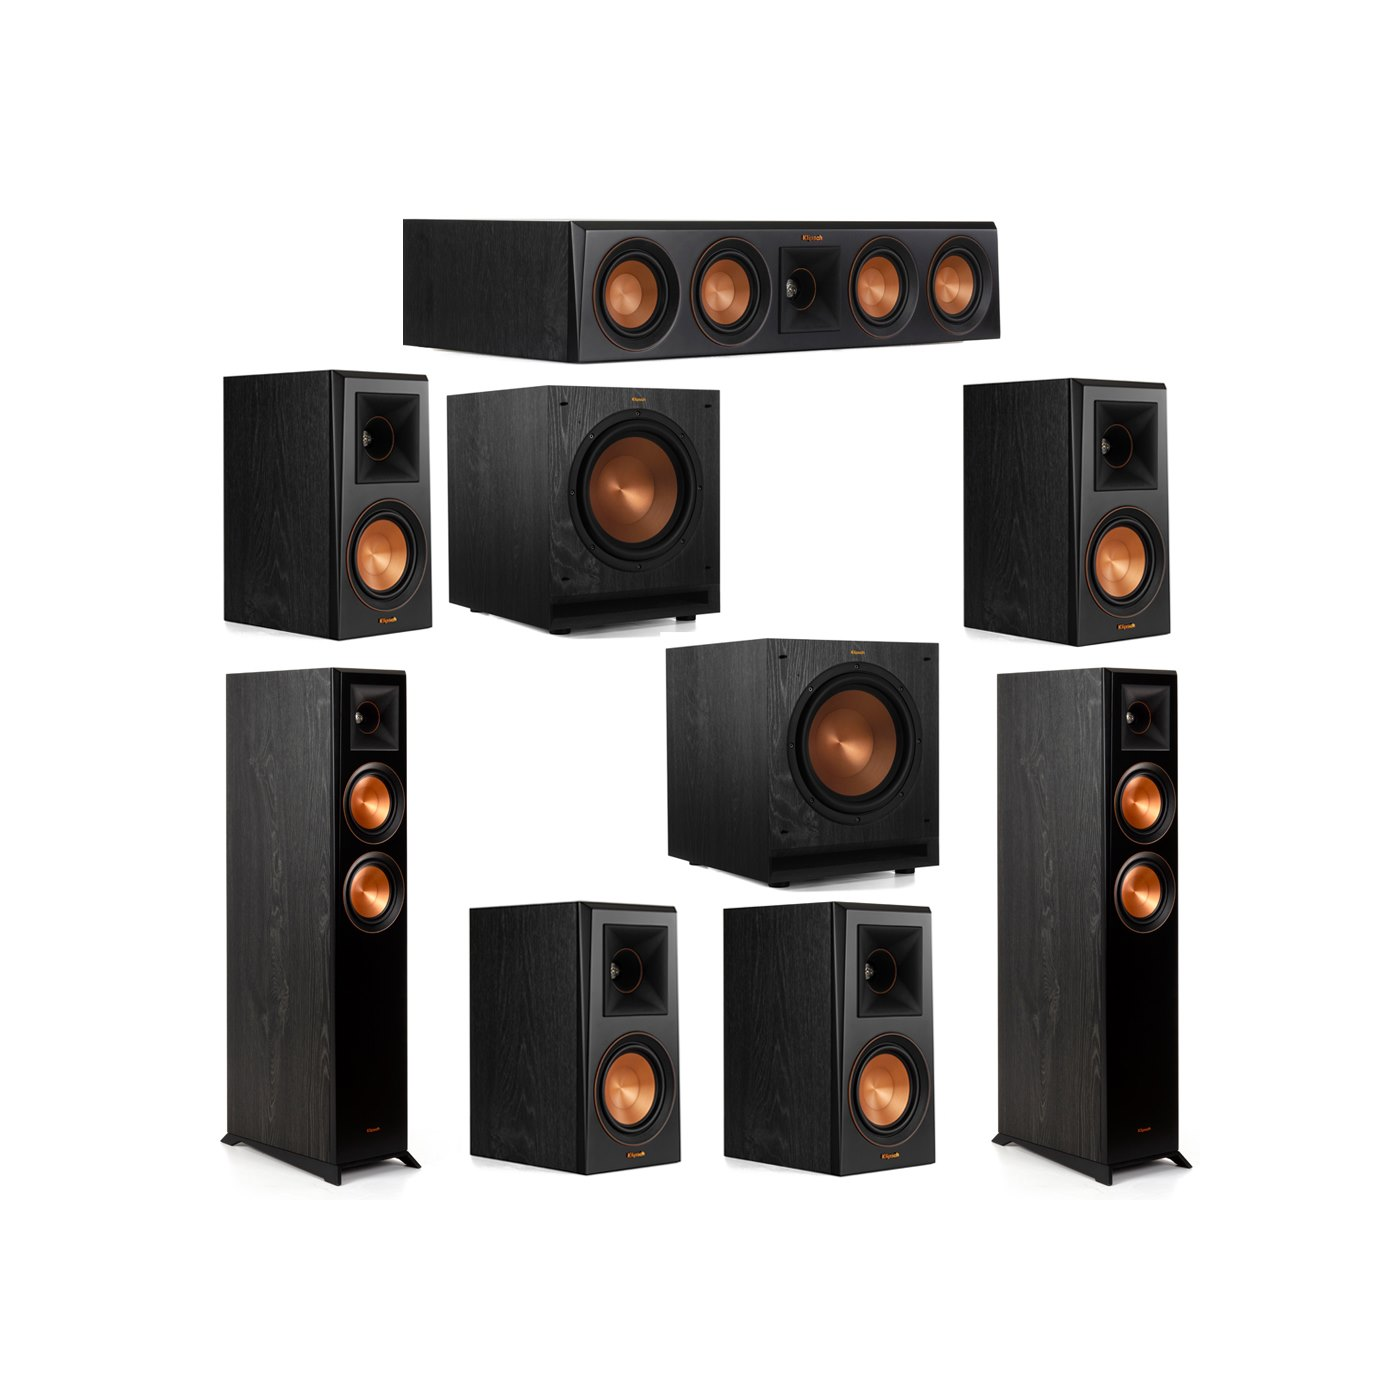 Klipsch 7.2 System with 2 RP-5000F Floorstanding Speakers, 1 Klipsch RP-404C Center Speaker, 4 Klipsch RP-500M Surround Speakers, 2 Klipsch SPL-100 Subwoofers